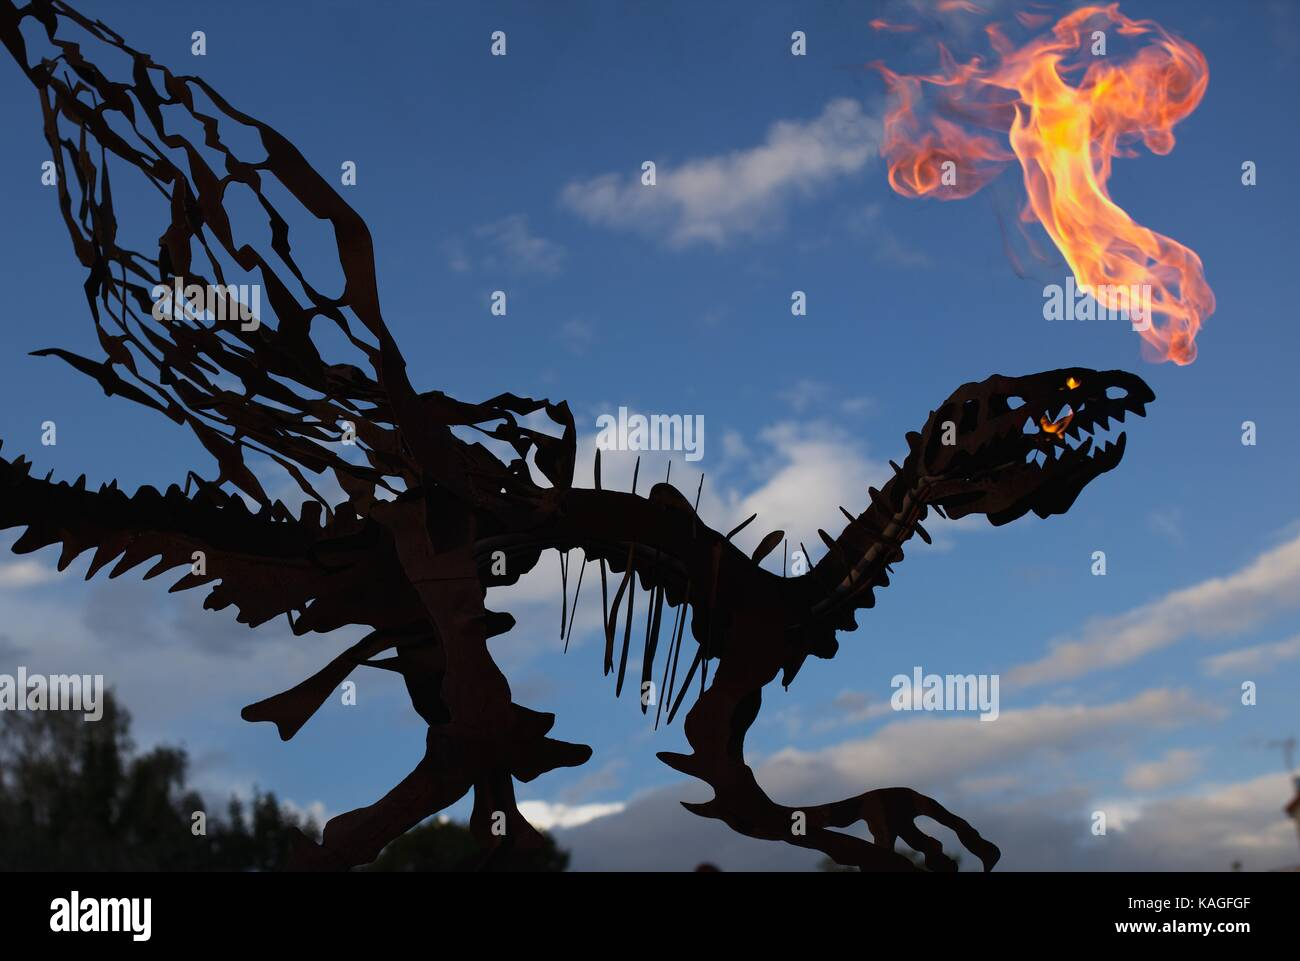 Dragon Silhouette spitting fire - Stock Image